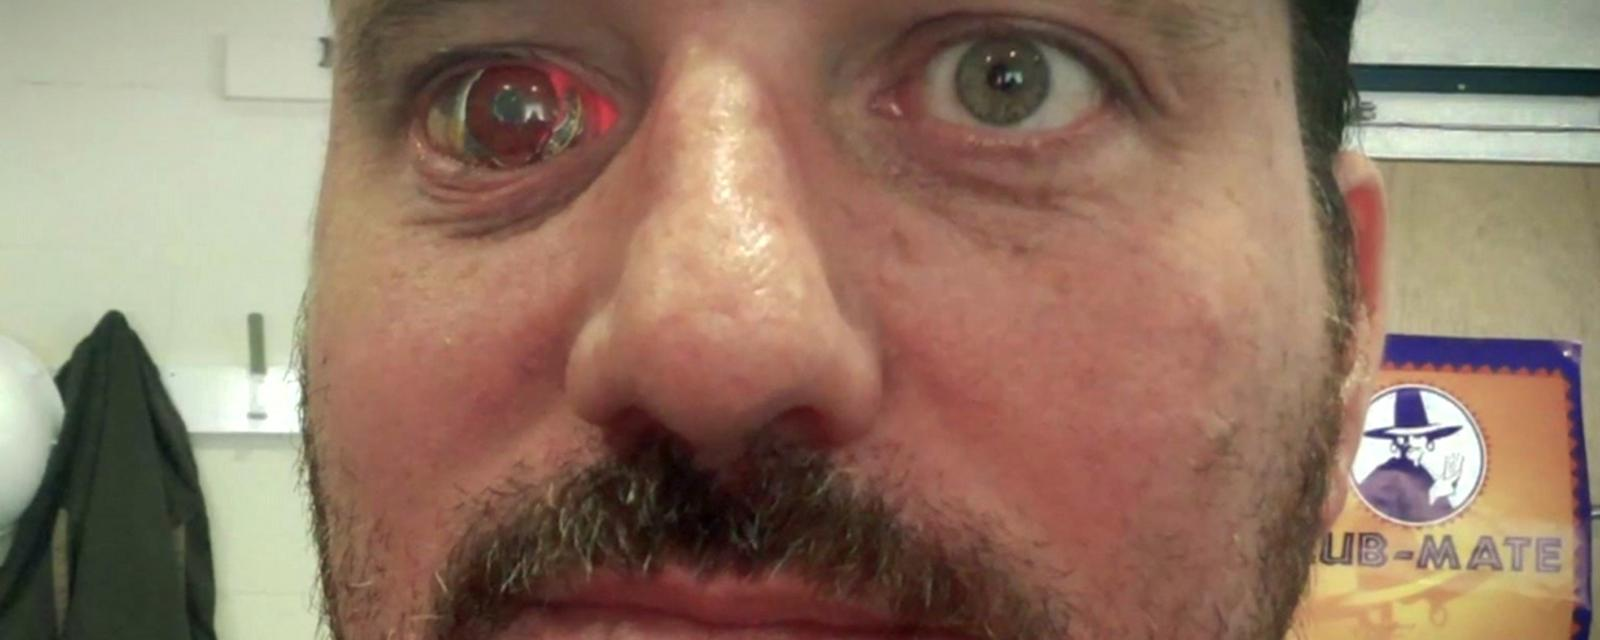 The man with a camera inside his eye